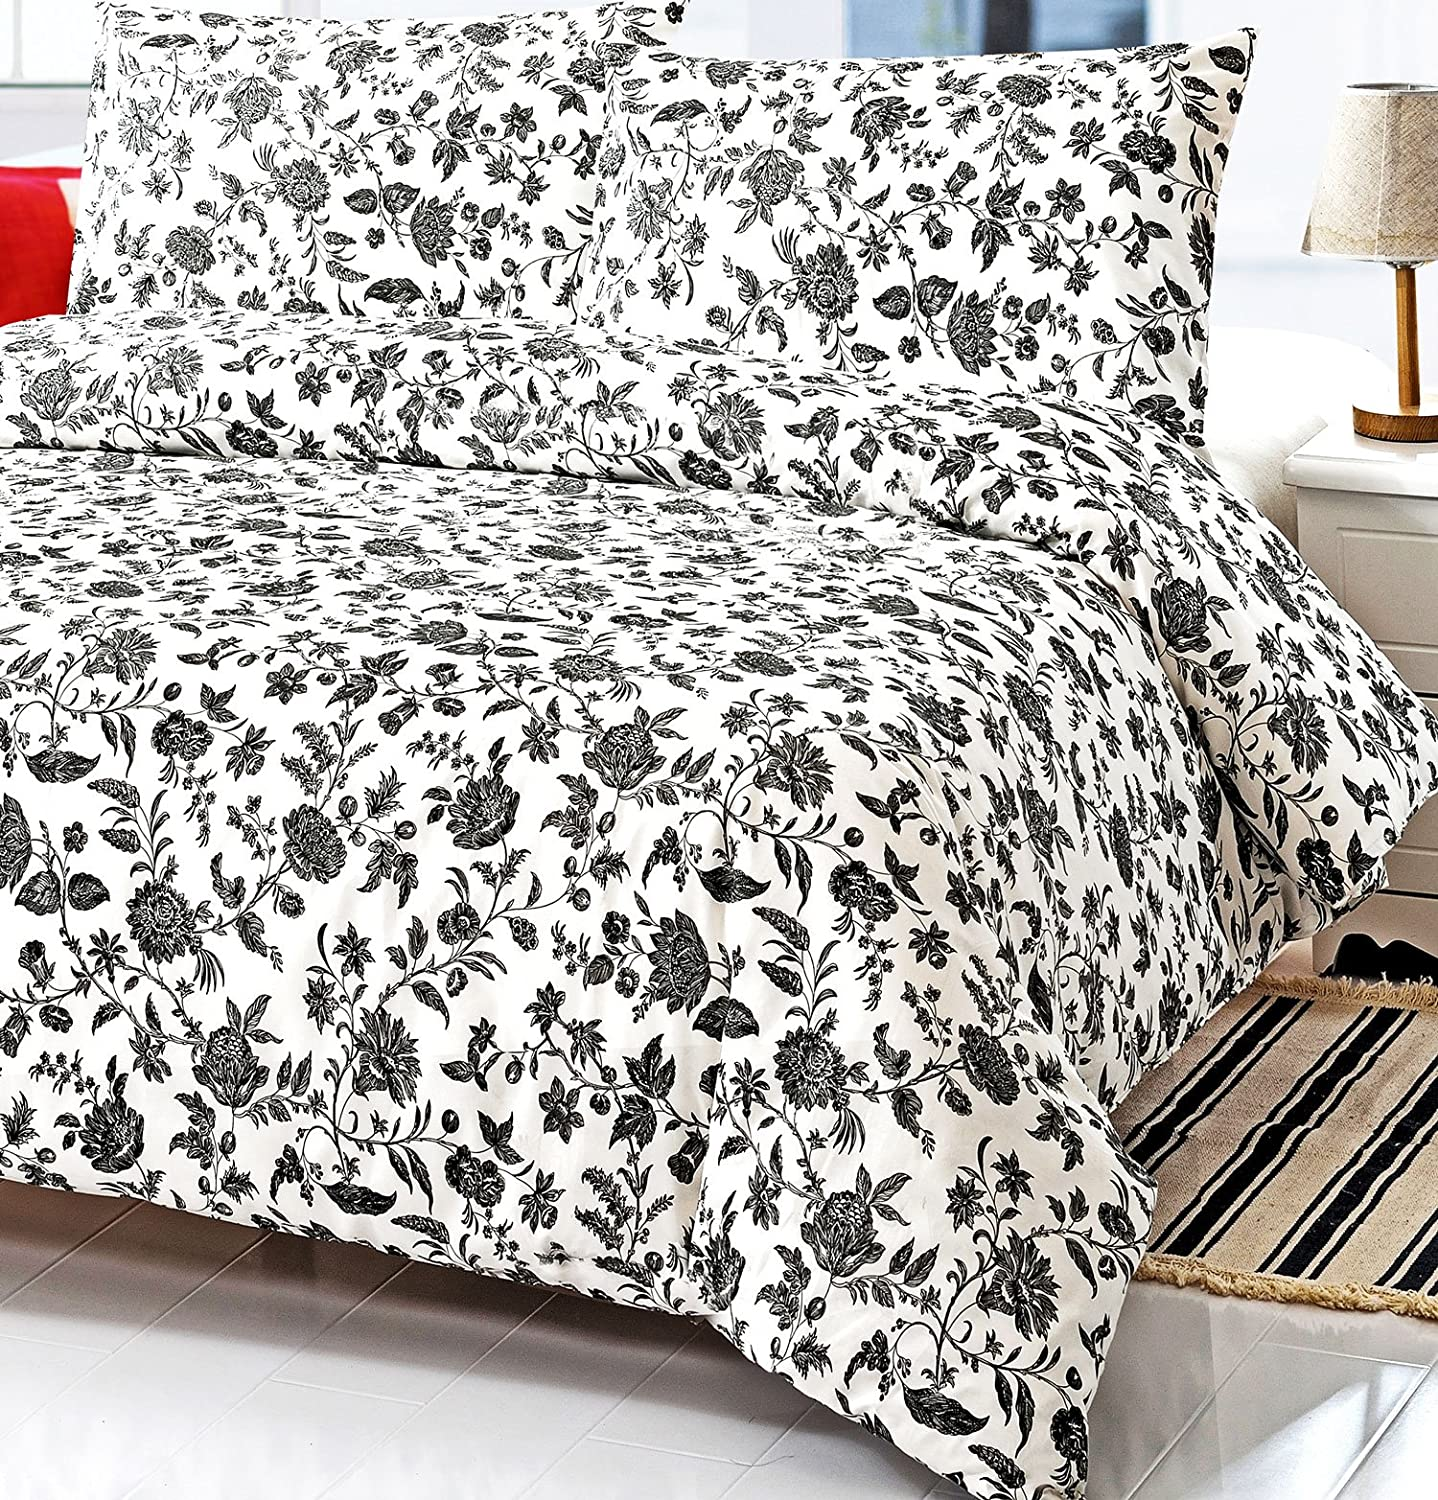 Black and white striped bed sheets - Black And White Floral Full Queen Size Duvet Cover Set